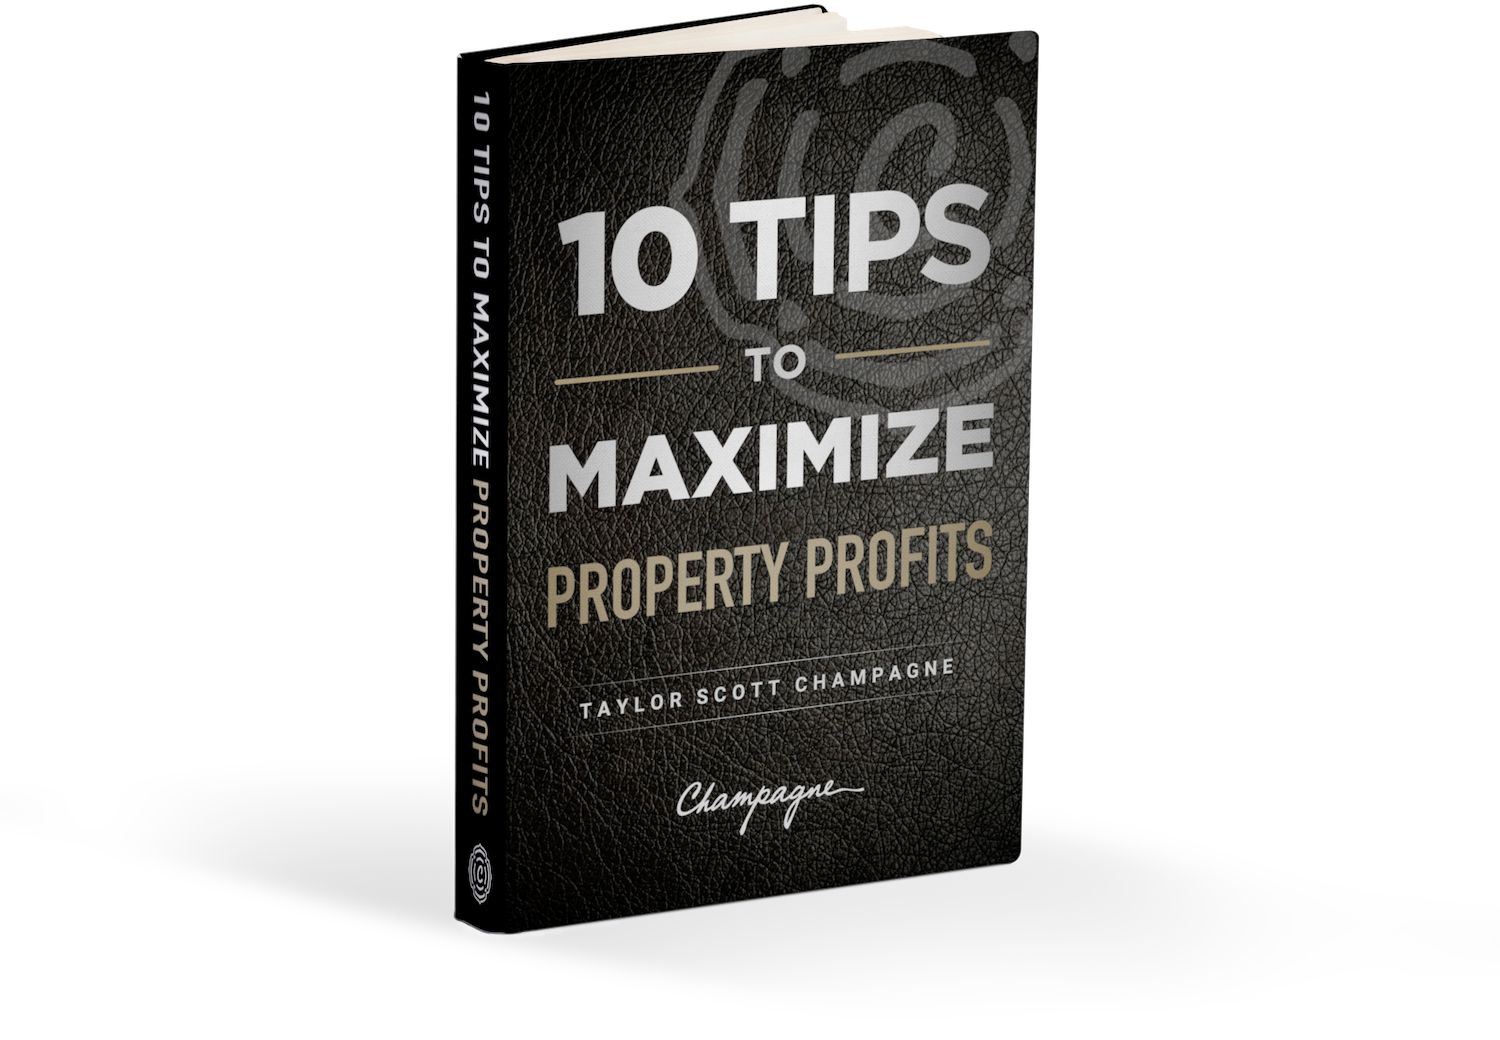 10 Tips to Maximize Property Profits Book